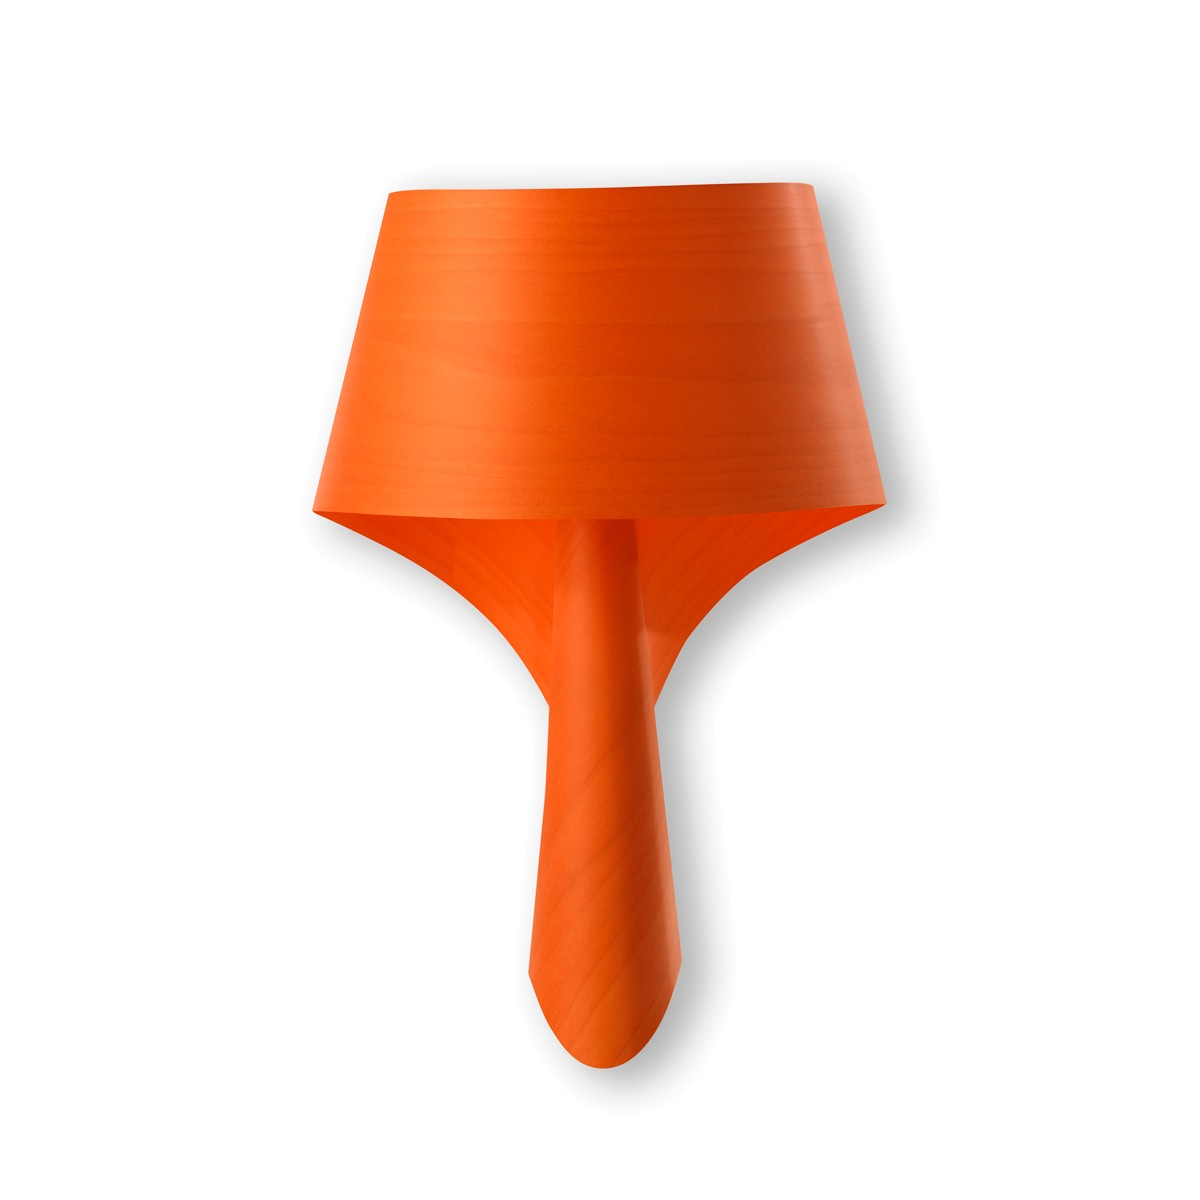 LZF Lamps Air Wandleuchte, orange